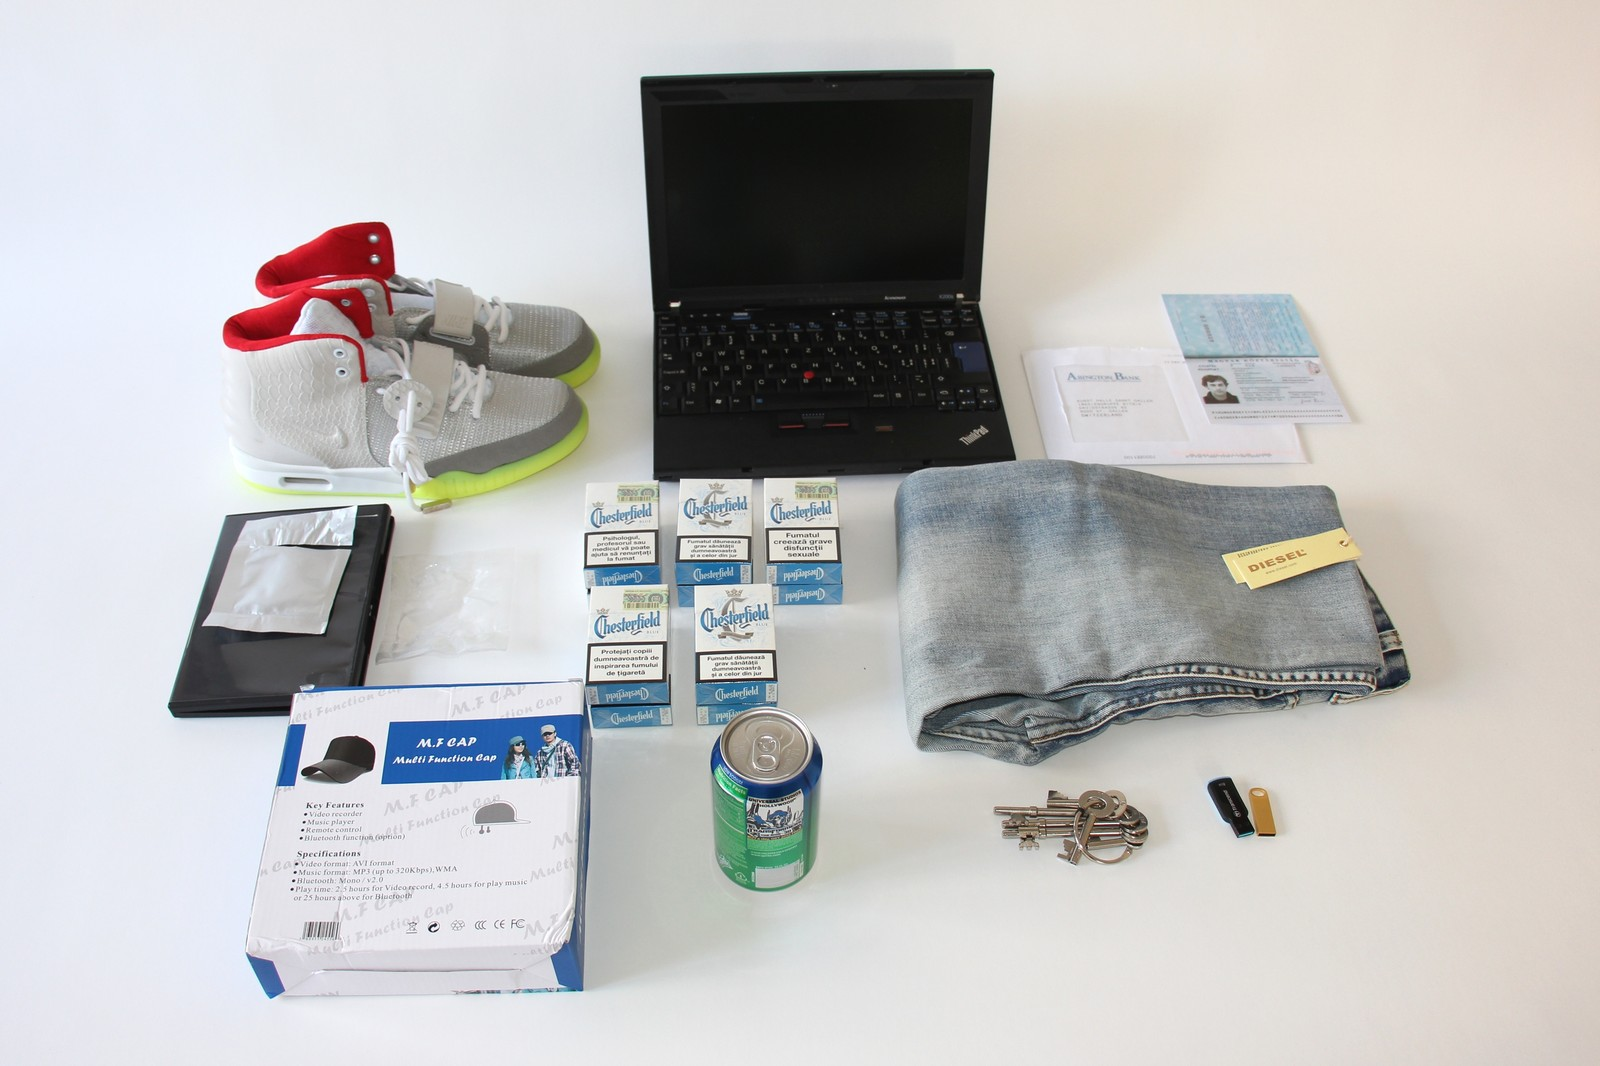 Illegal goods bought by a Darknet bot